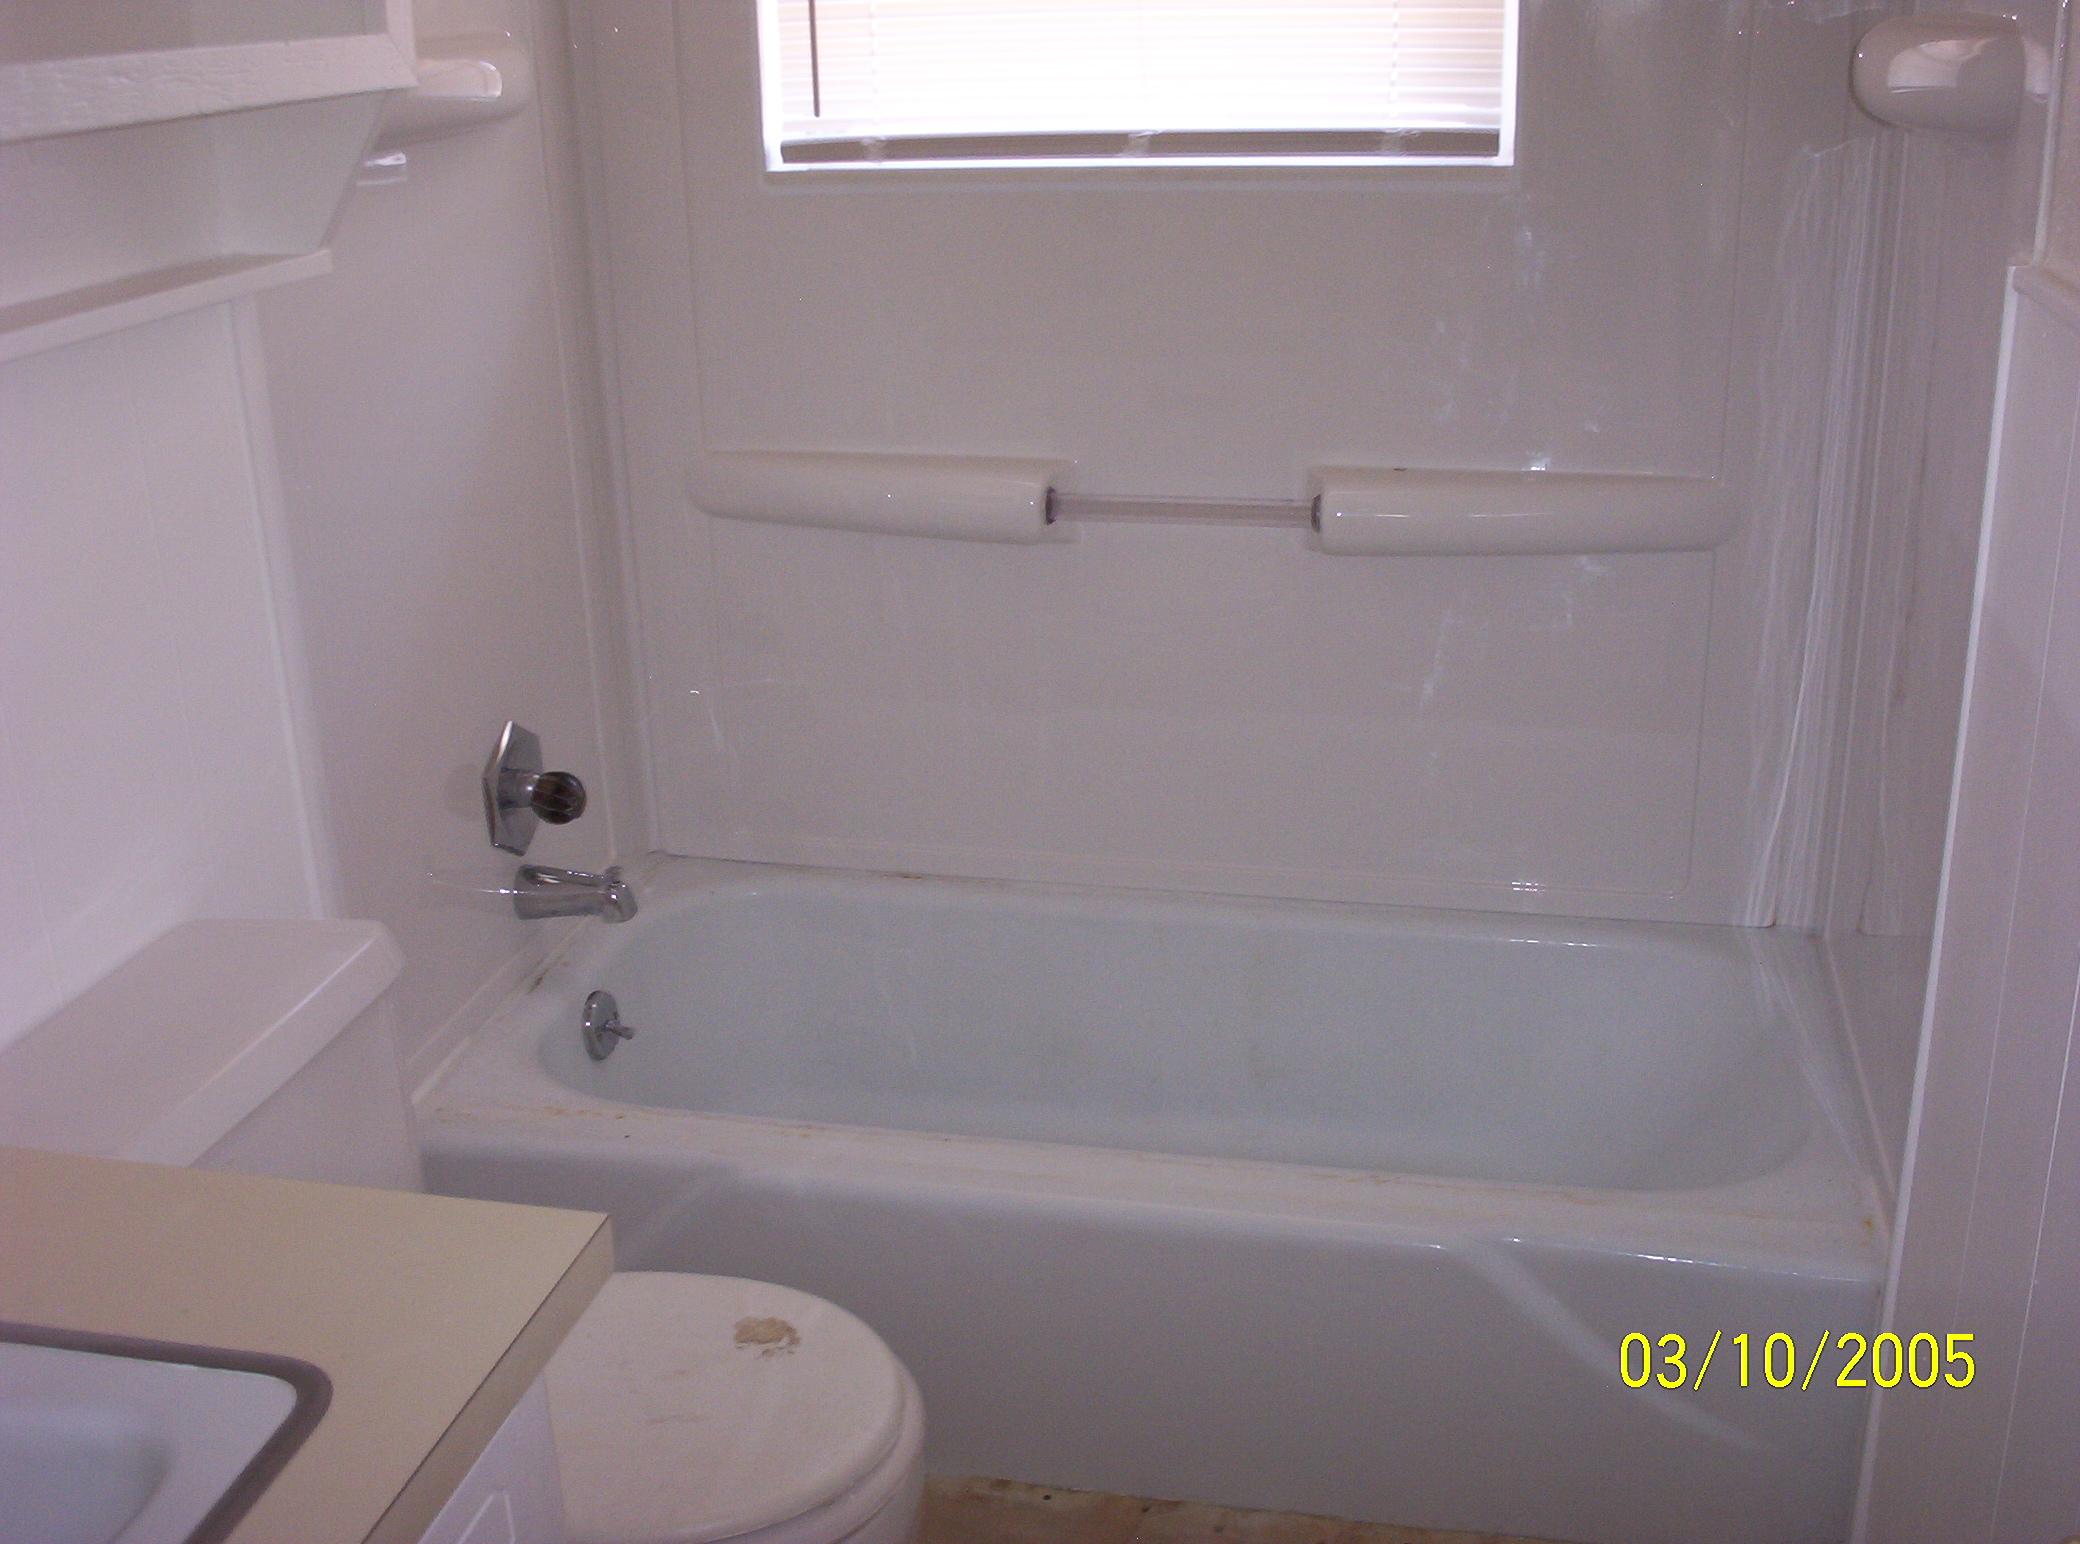 Mortar Bed For Fiberglass Bathtub - Bathtub Ideas